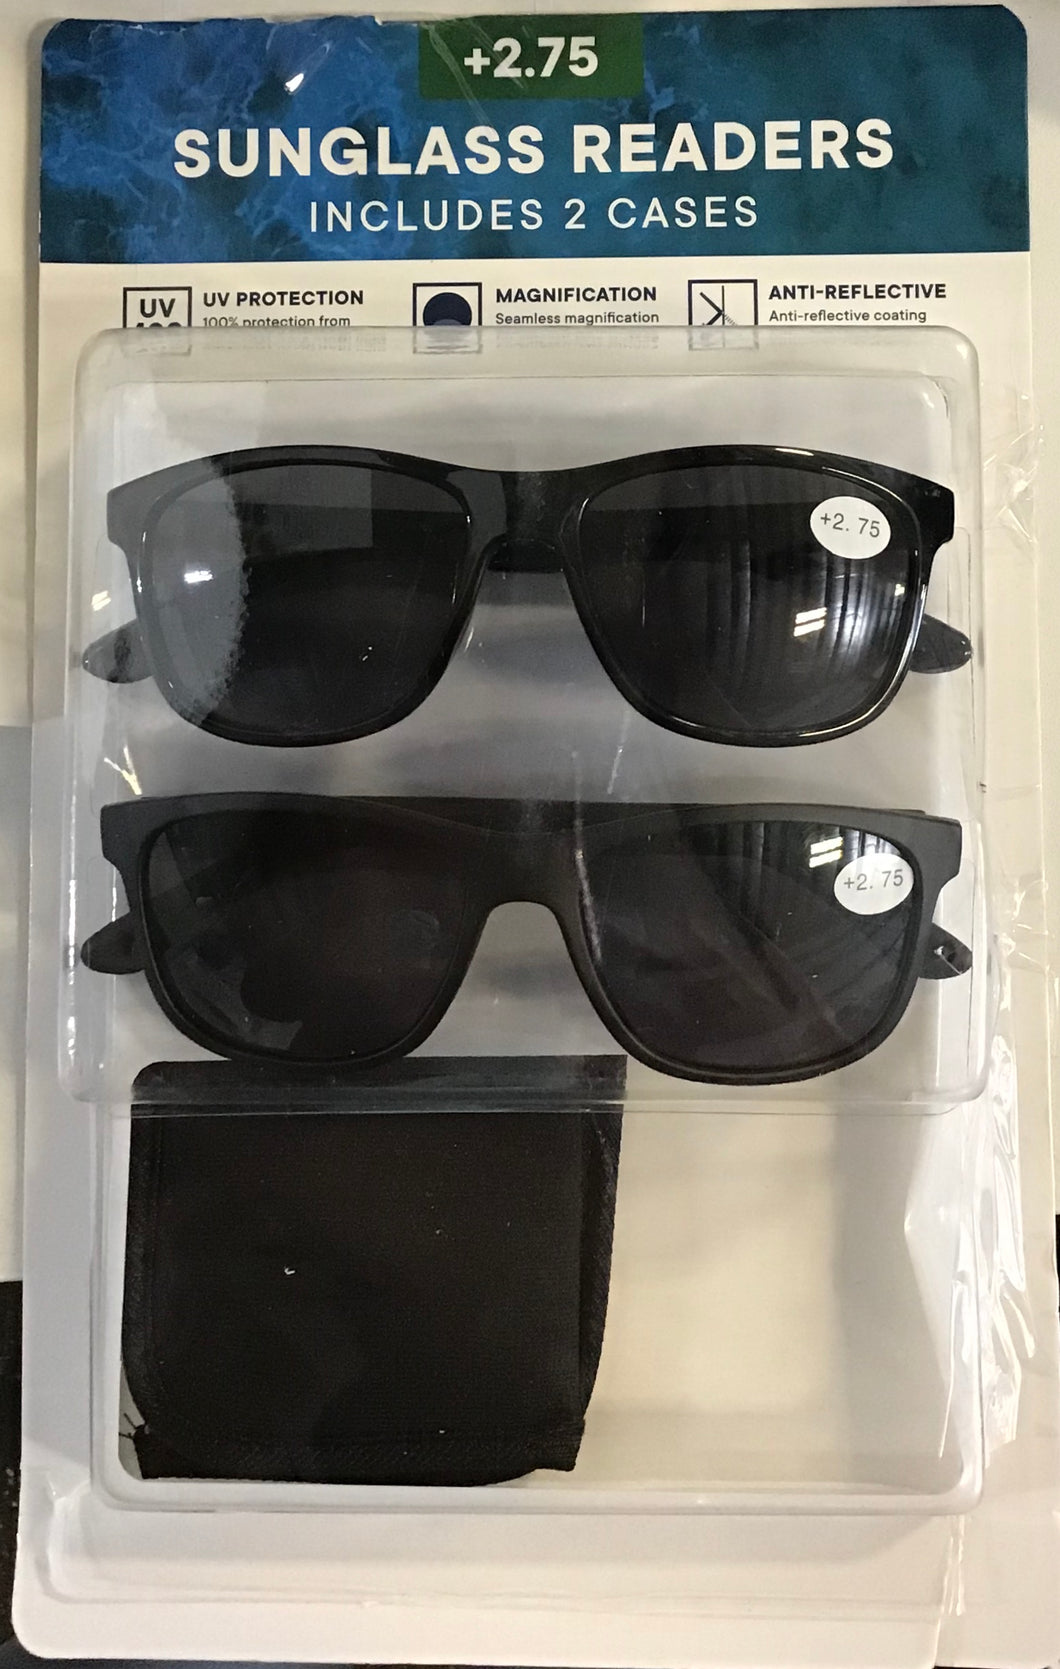 SUNGLASSES READERS INCLUDES 2 CASES (+2.75 )